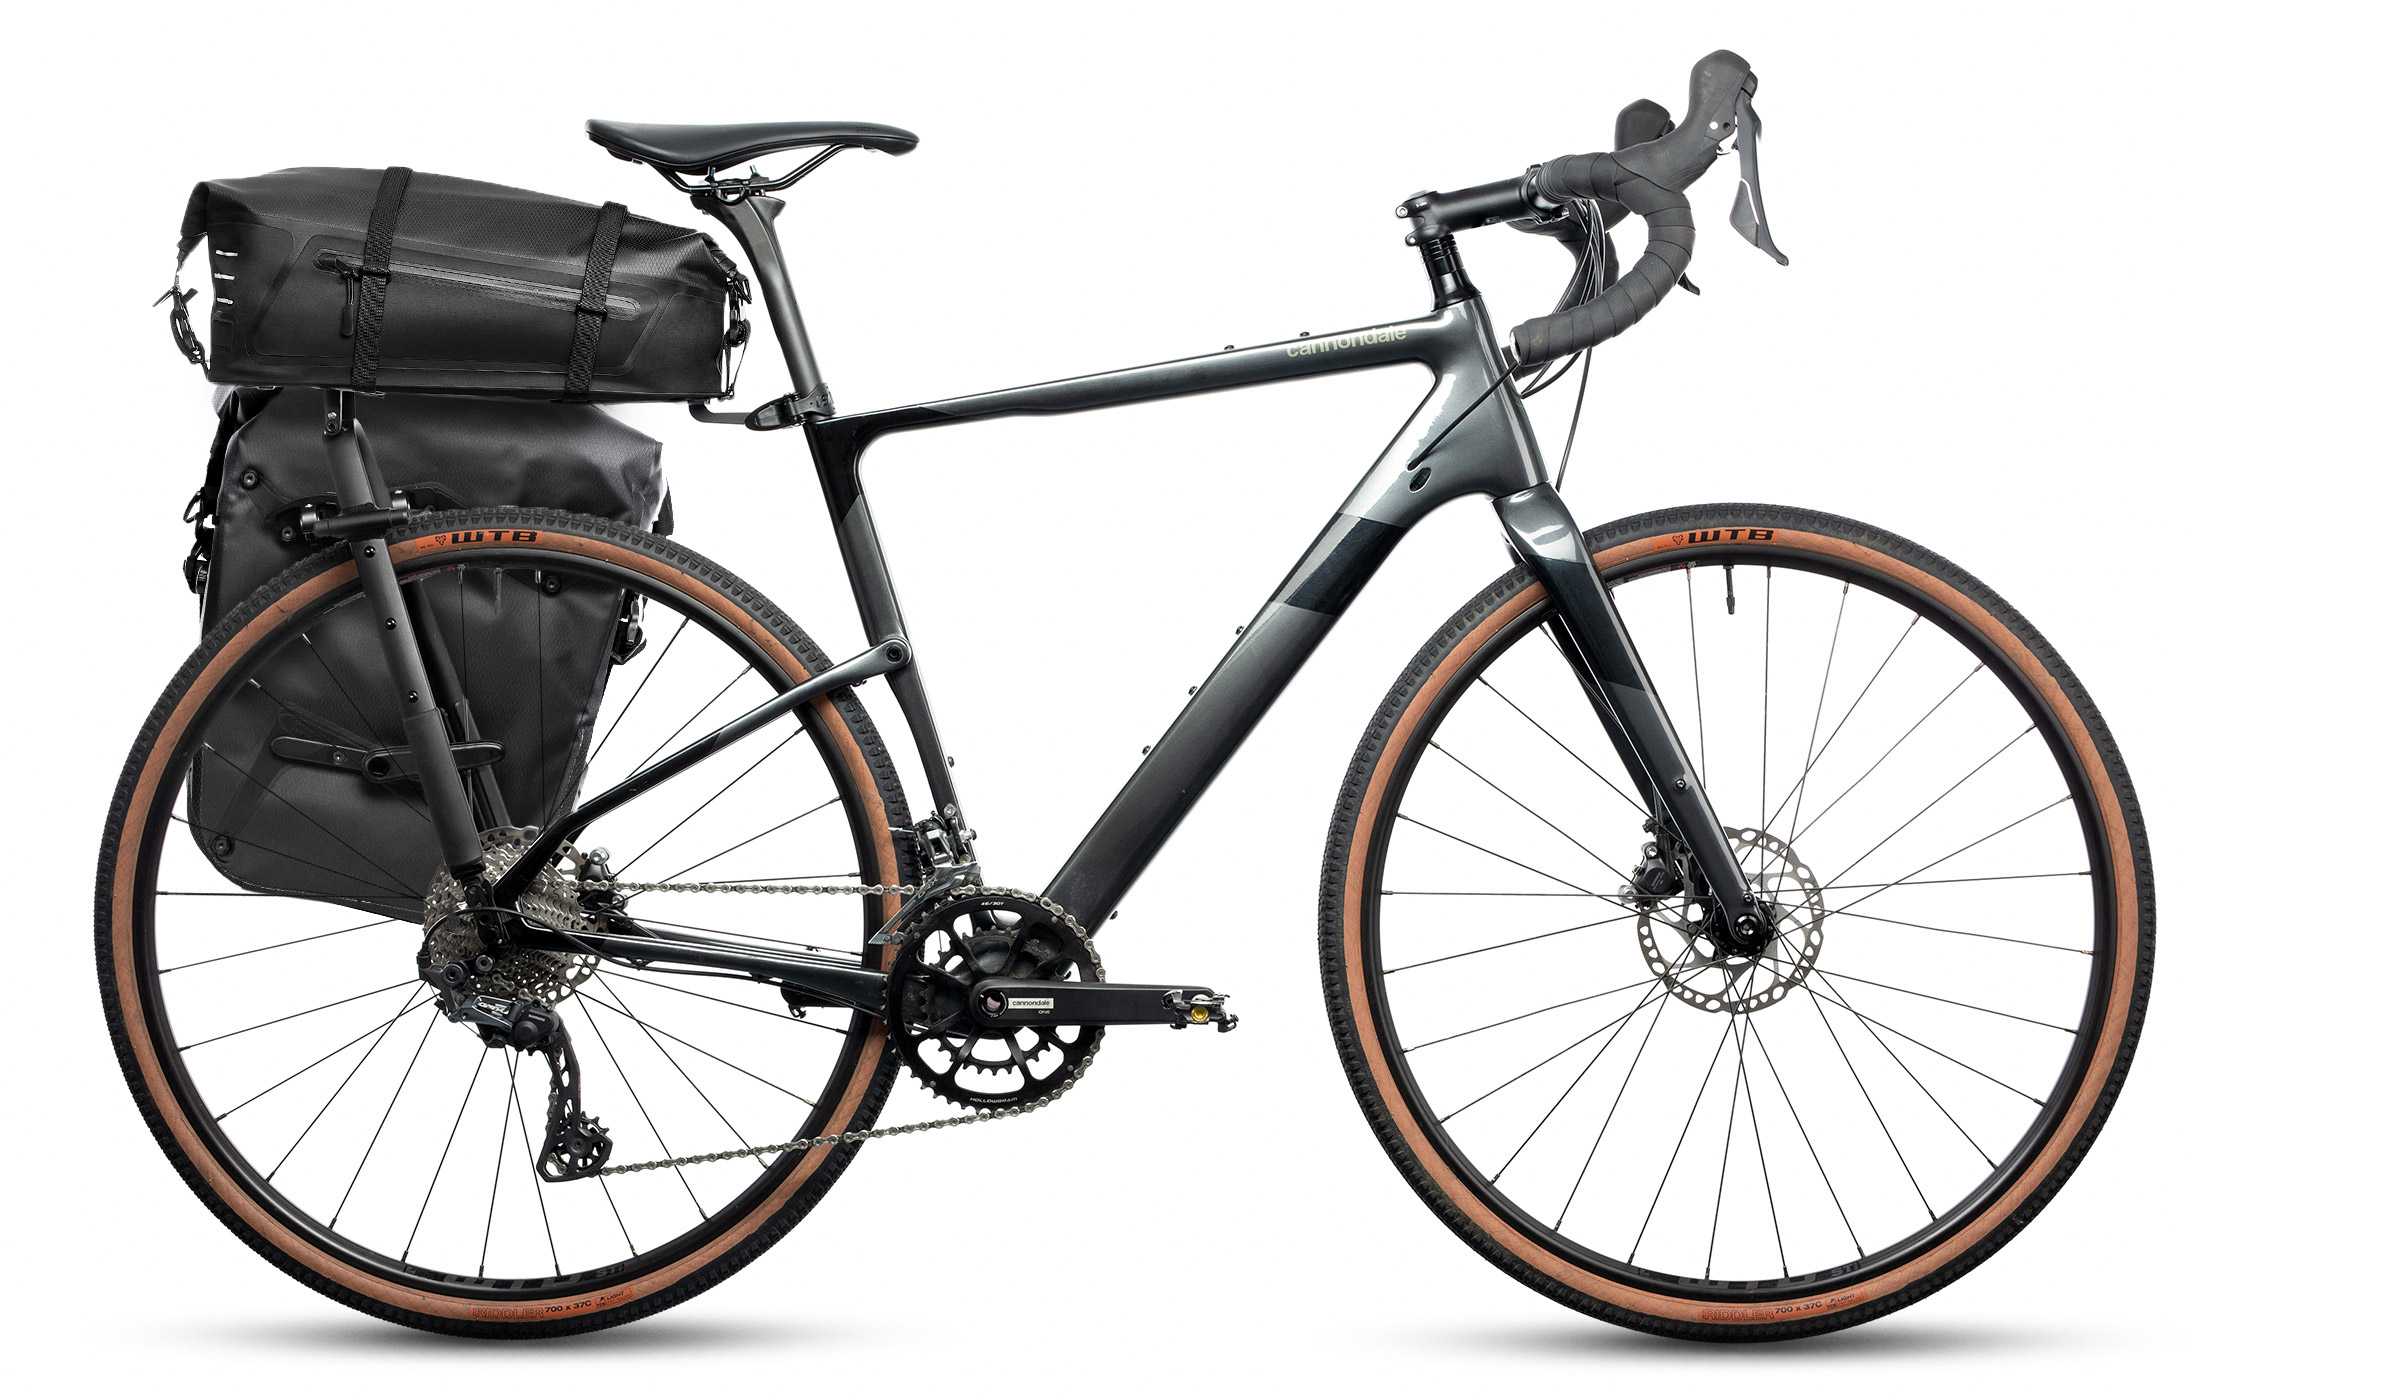 rack with pannier